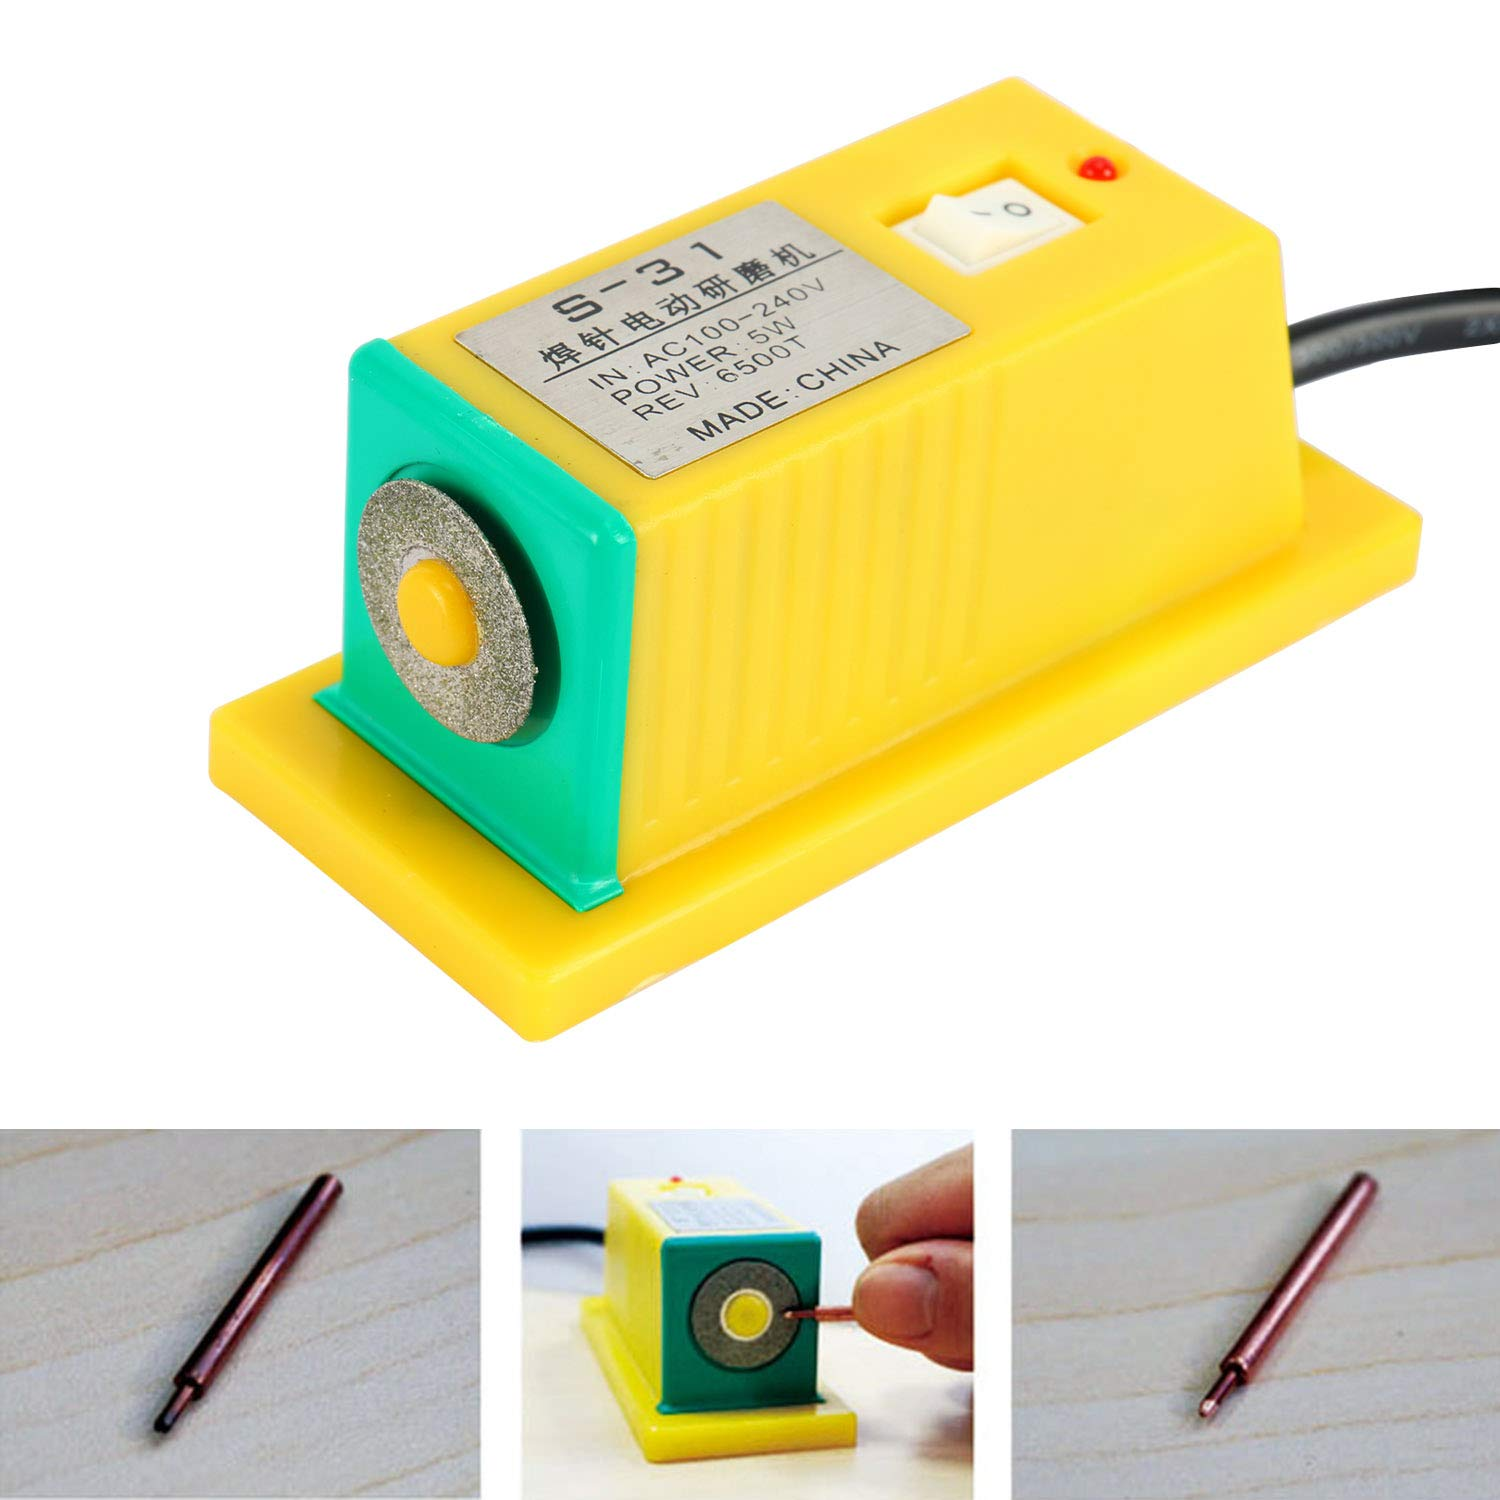 Yae First Trading Co Itd SUNKKO Mini Grinder Grinding Machine for Spot Welding Needles Pins S-31A